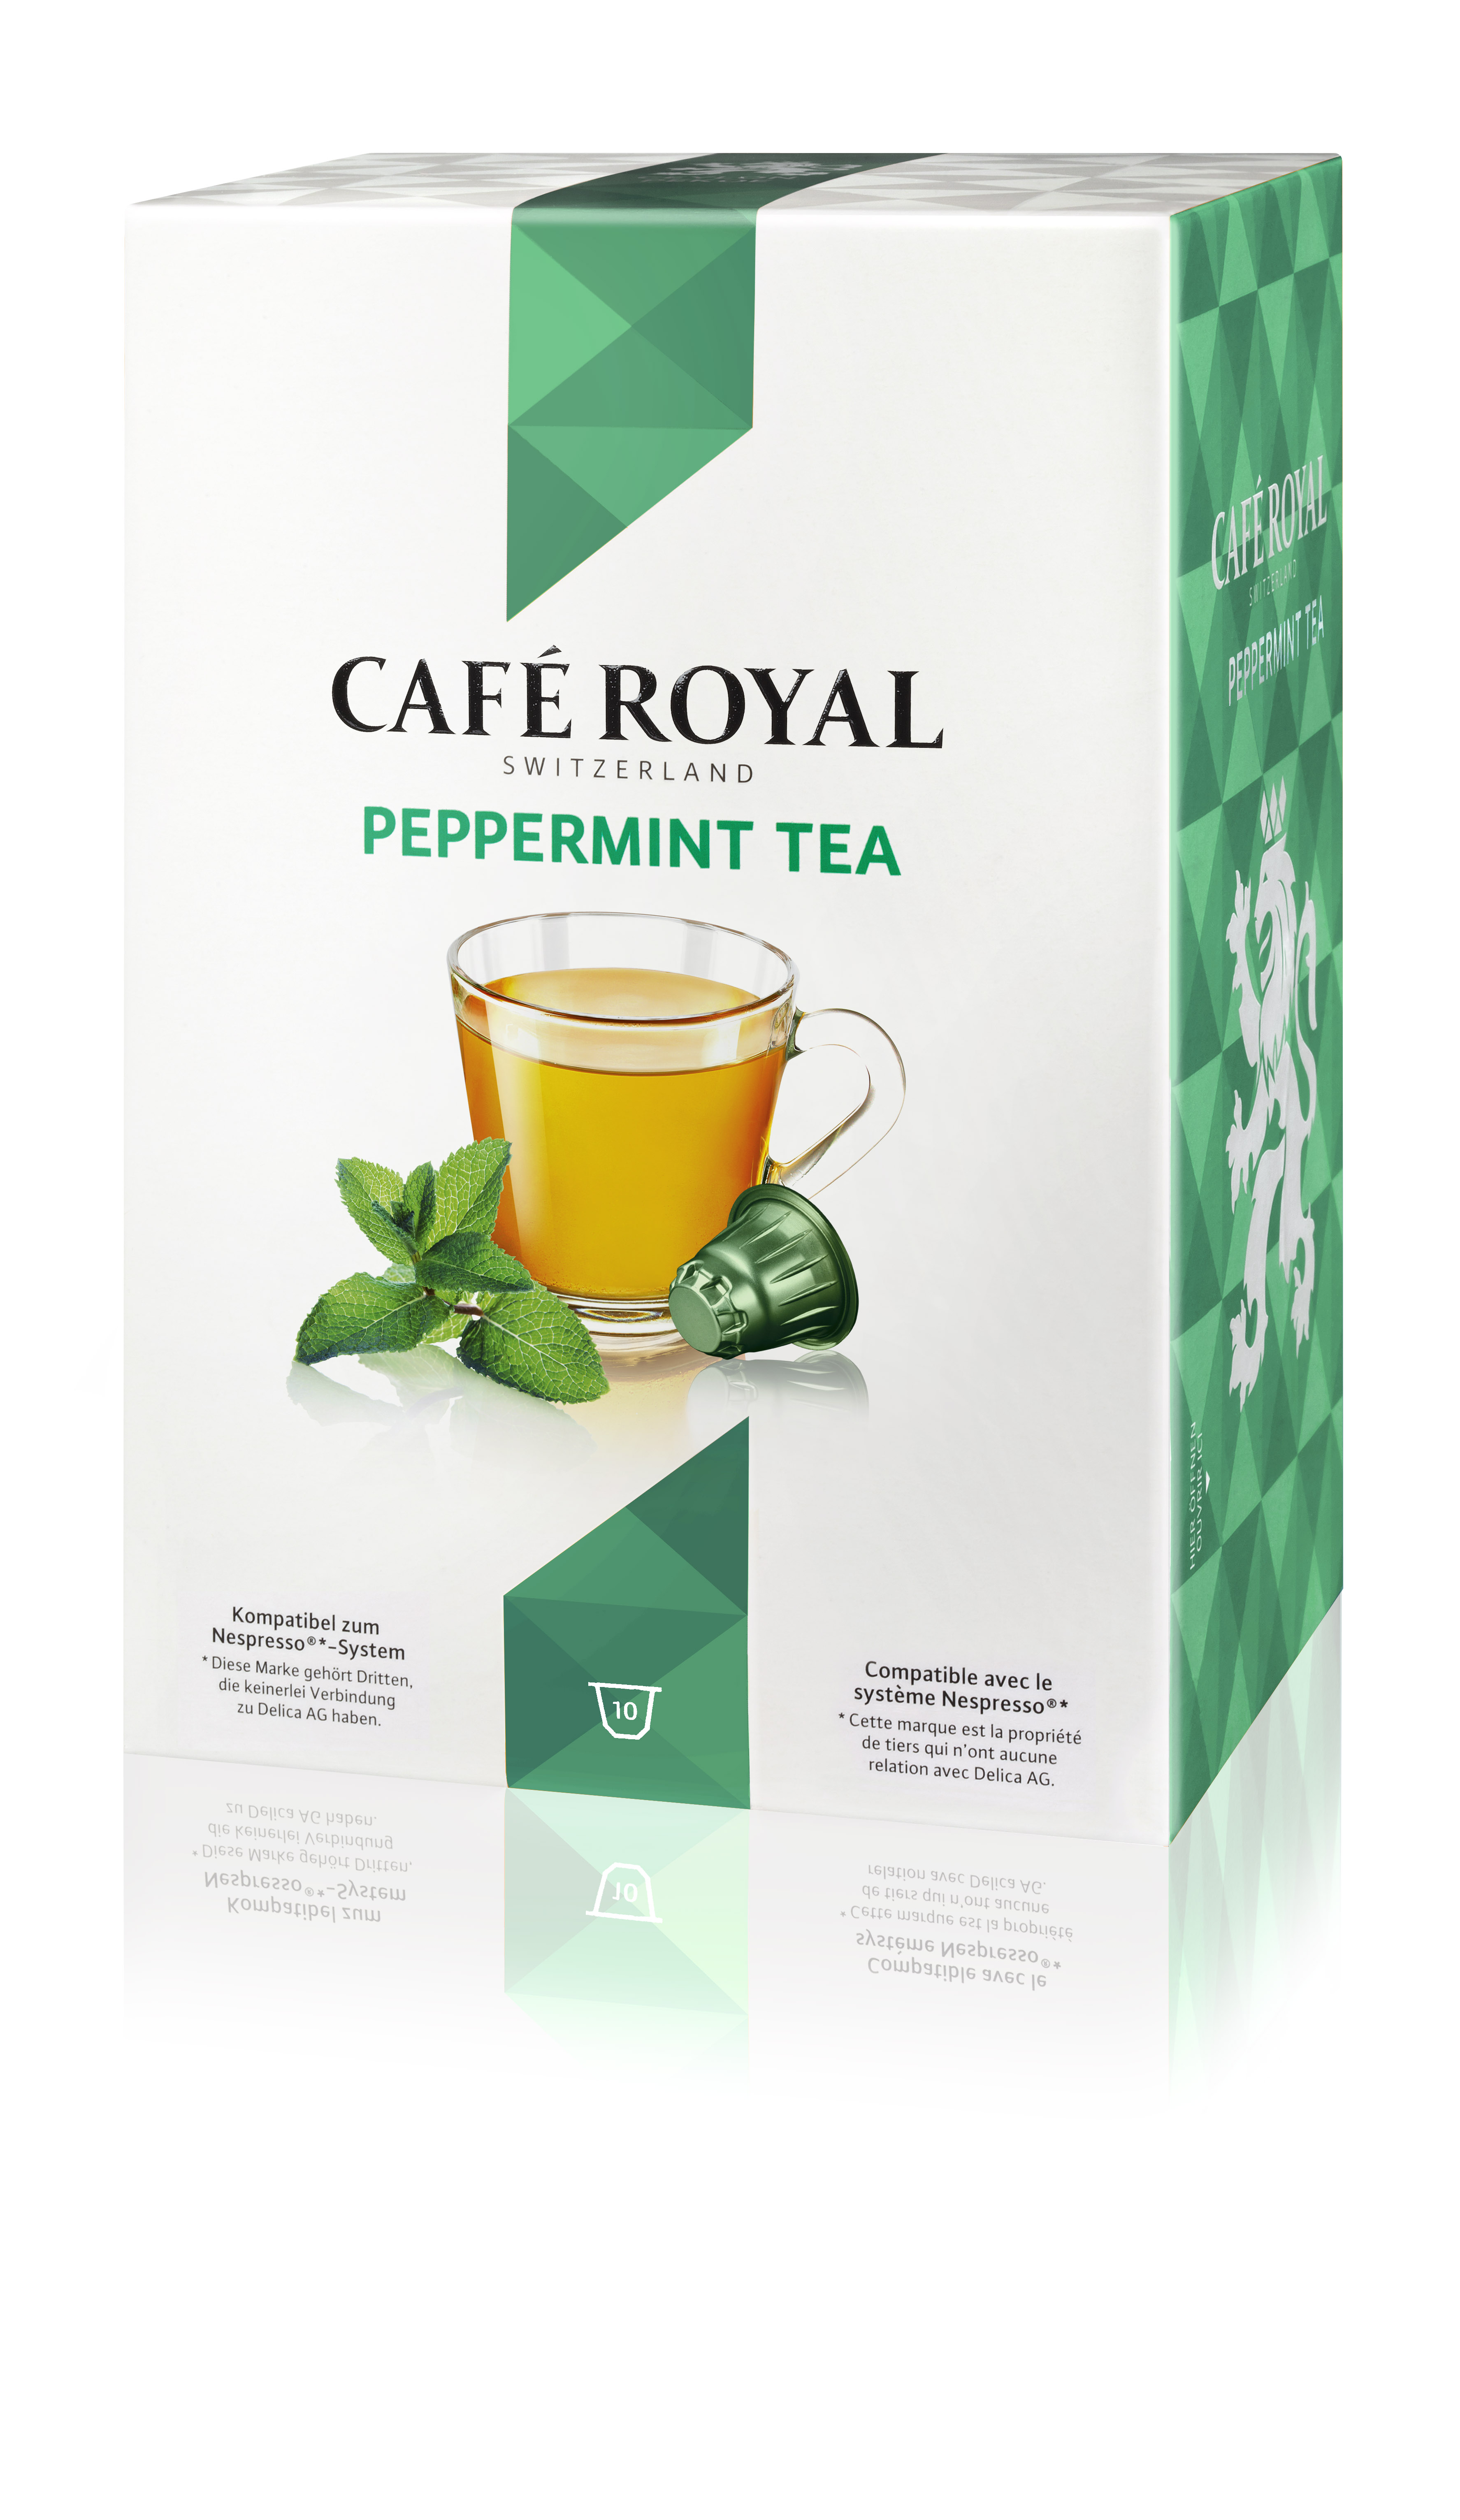 Капсулы для кофемашин Nespresso® Cafe Royal Peppermint